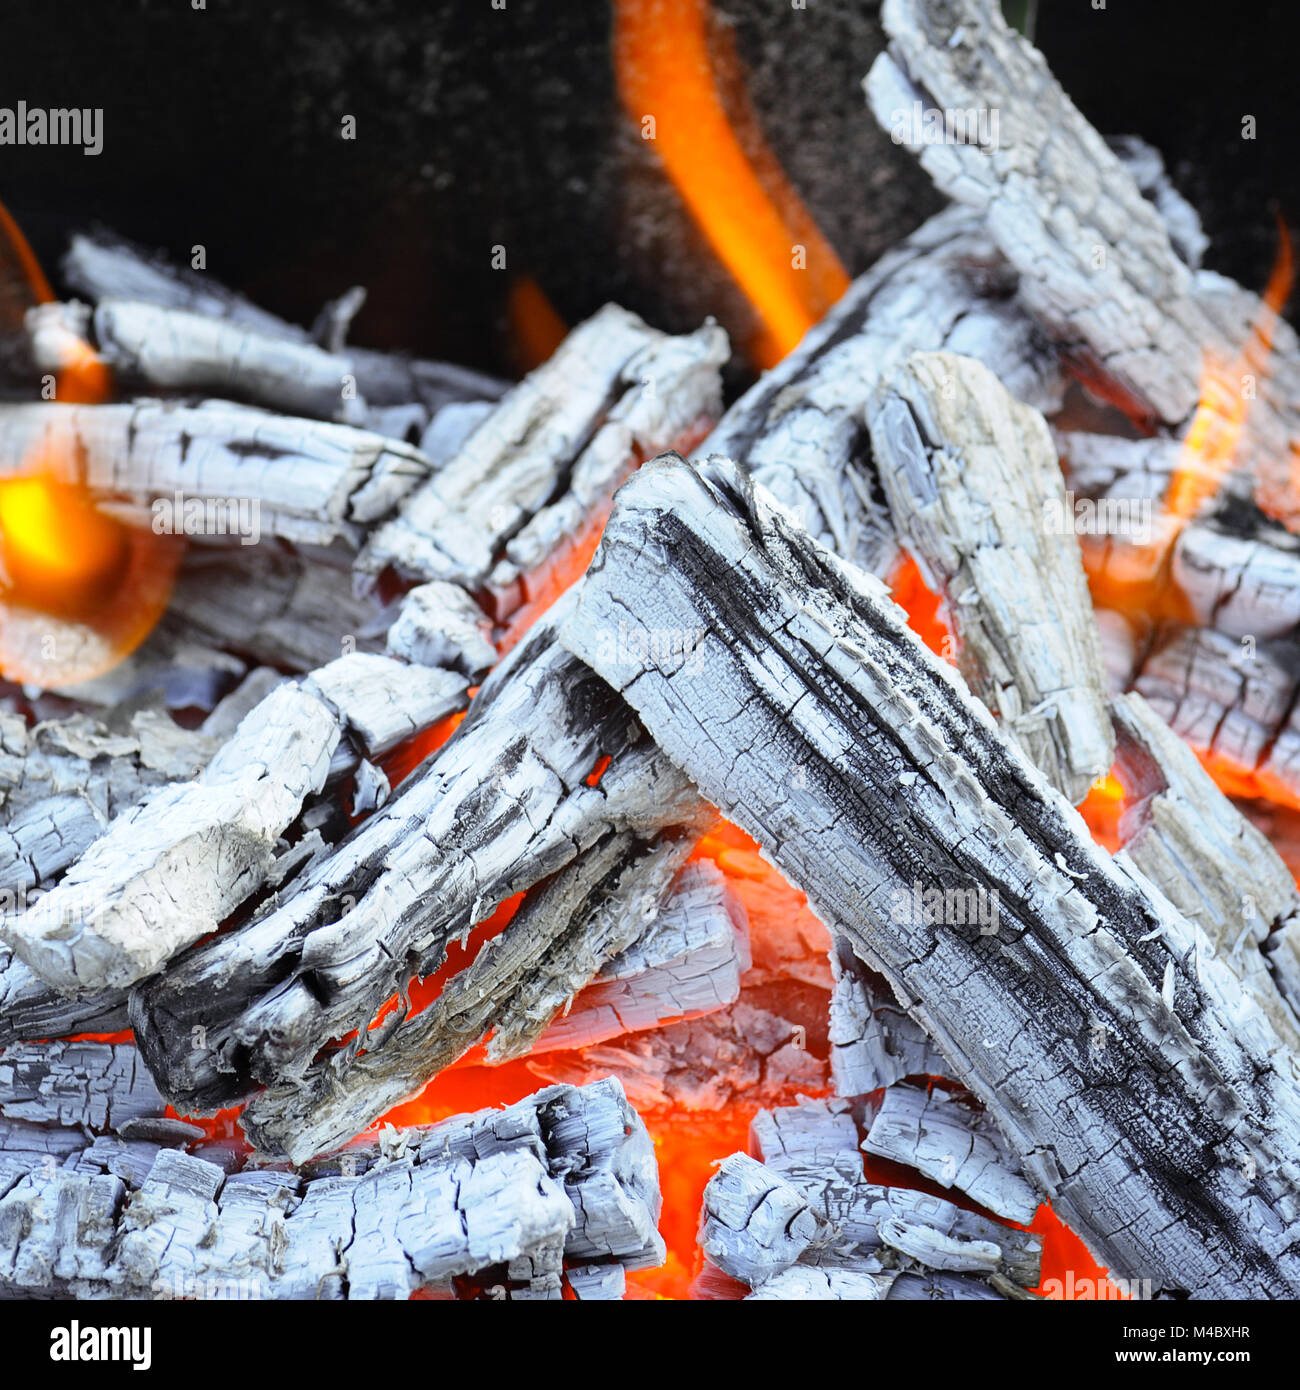 bonfire, fire, wood coal and ash - Stock Image